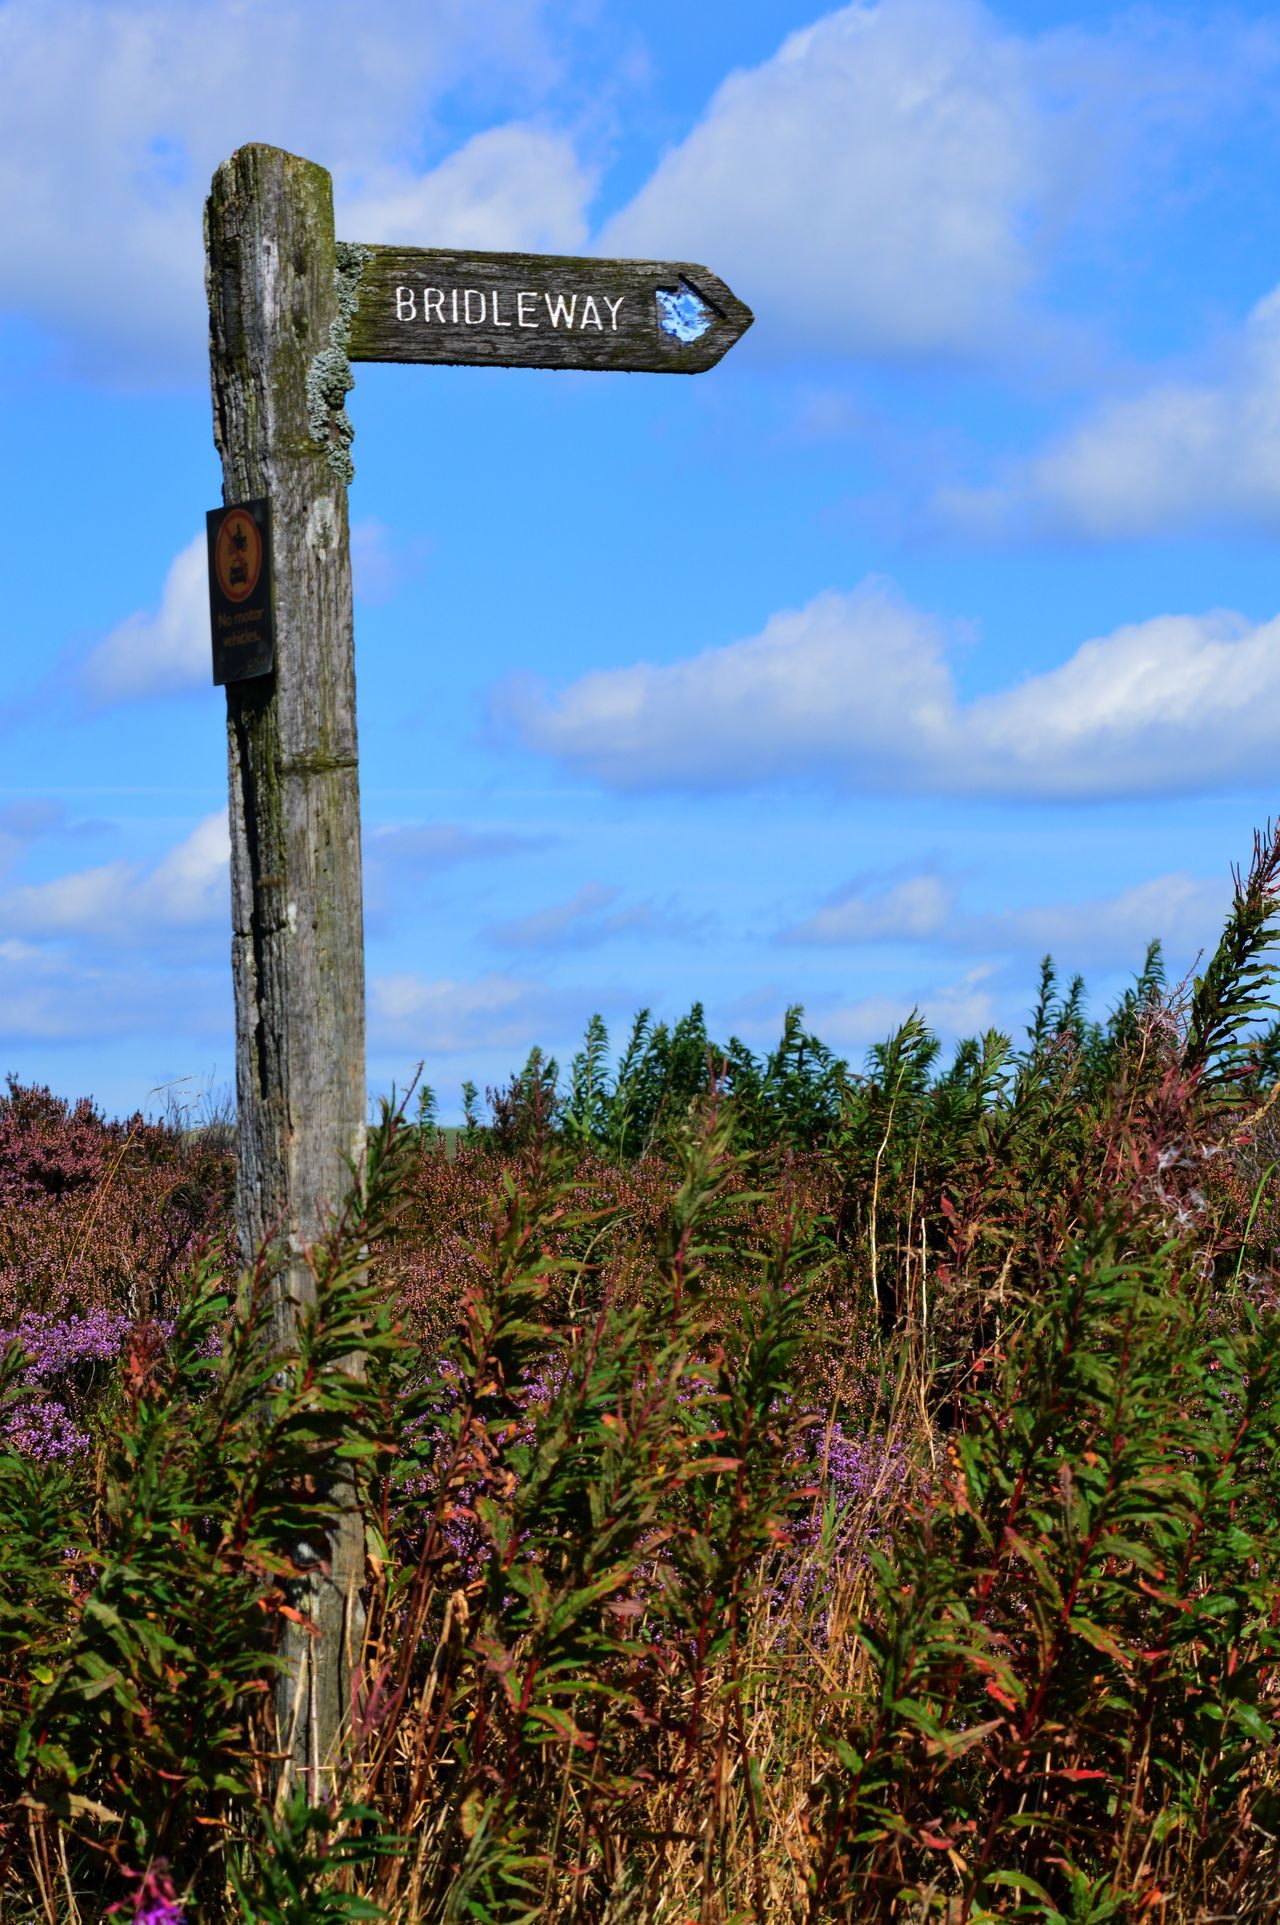 Agriculture Beauty In Nature Blue Bridle Way City Cloud - Sky Day Finger Post Landscape Nature No People Outdoors Sign Post Sky Miles Away